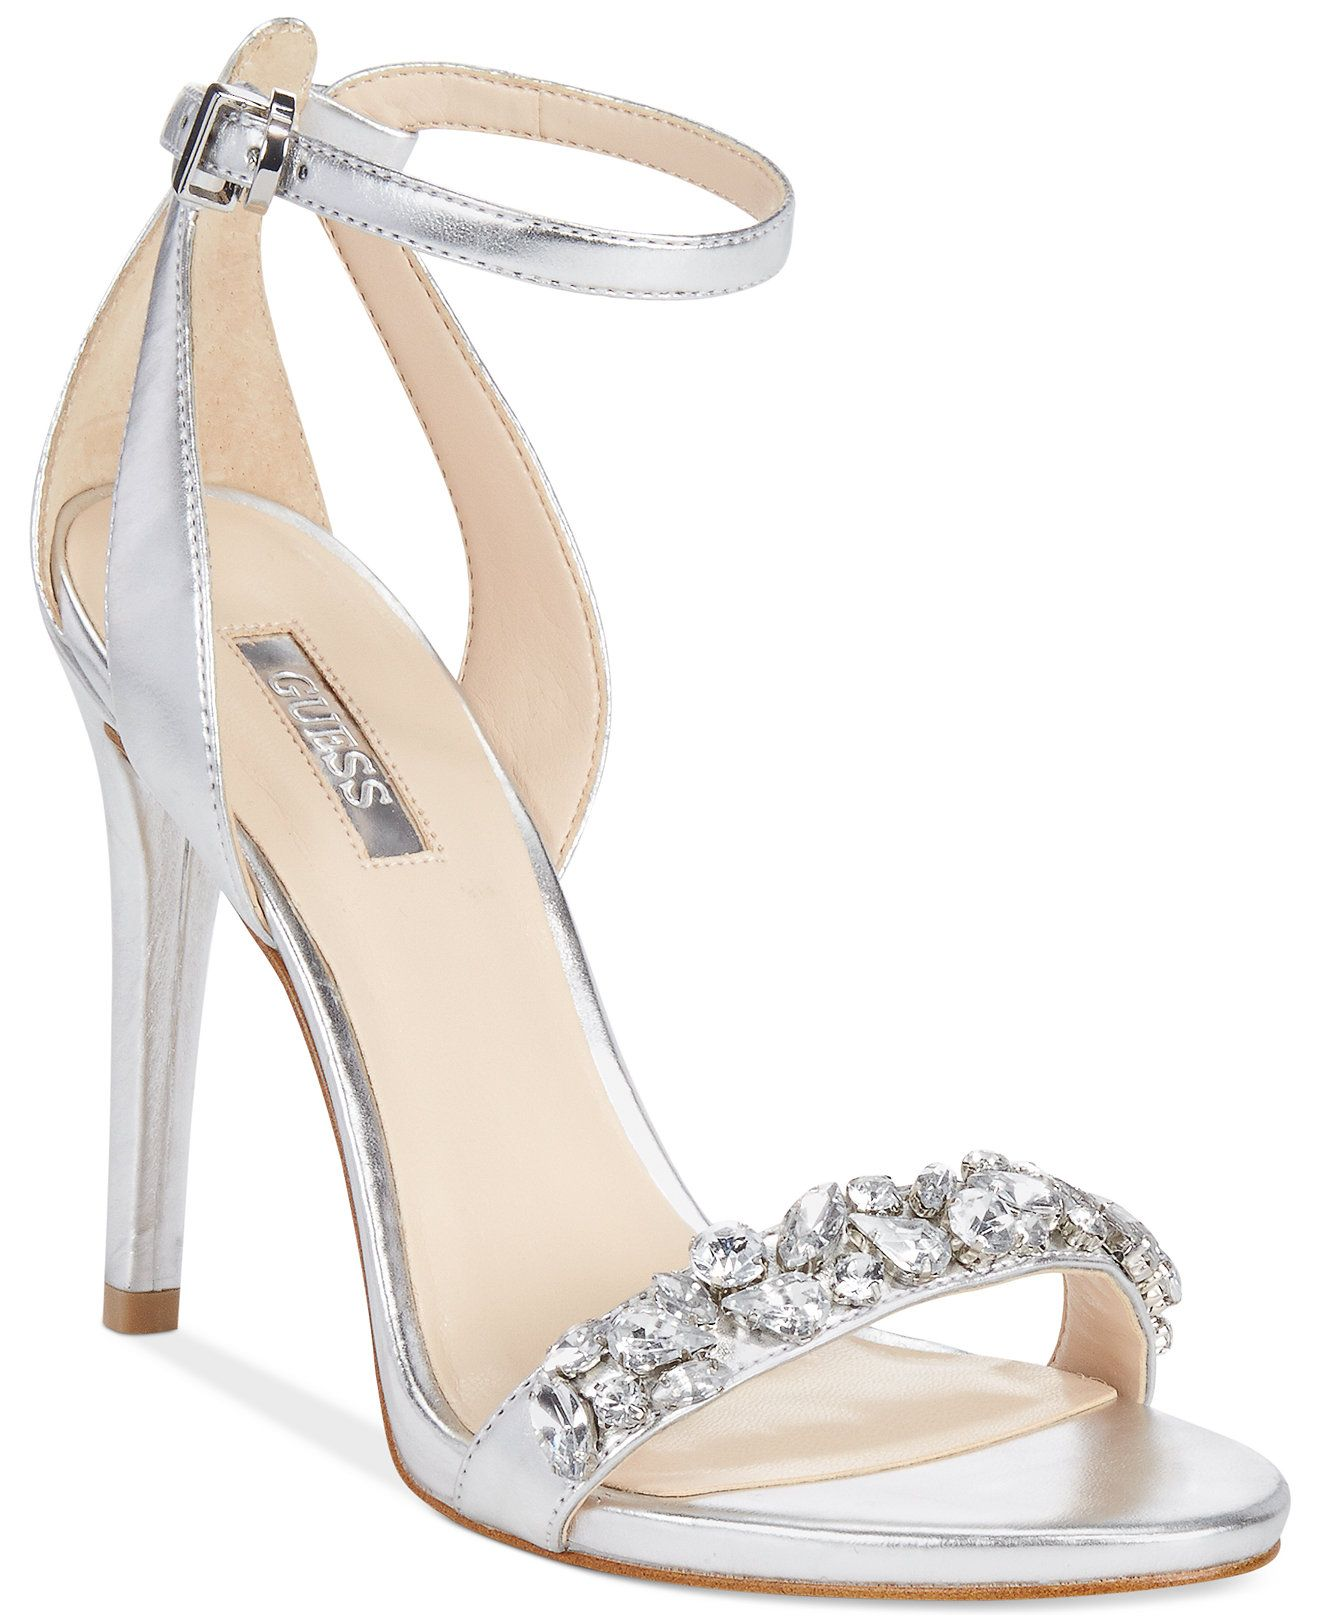 a0c21ac89d8394 GUESS Women s Caterina Two-Piece Sandals - Prom Shoes - Macy s ...